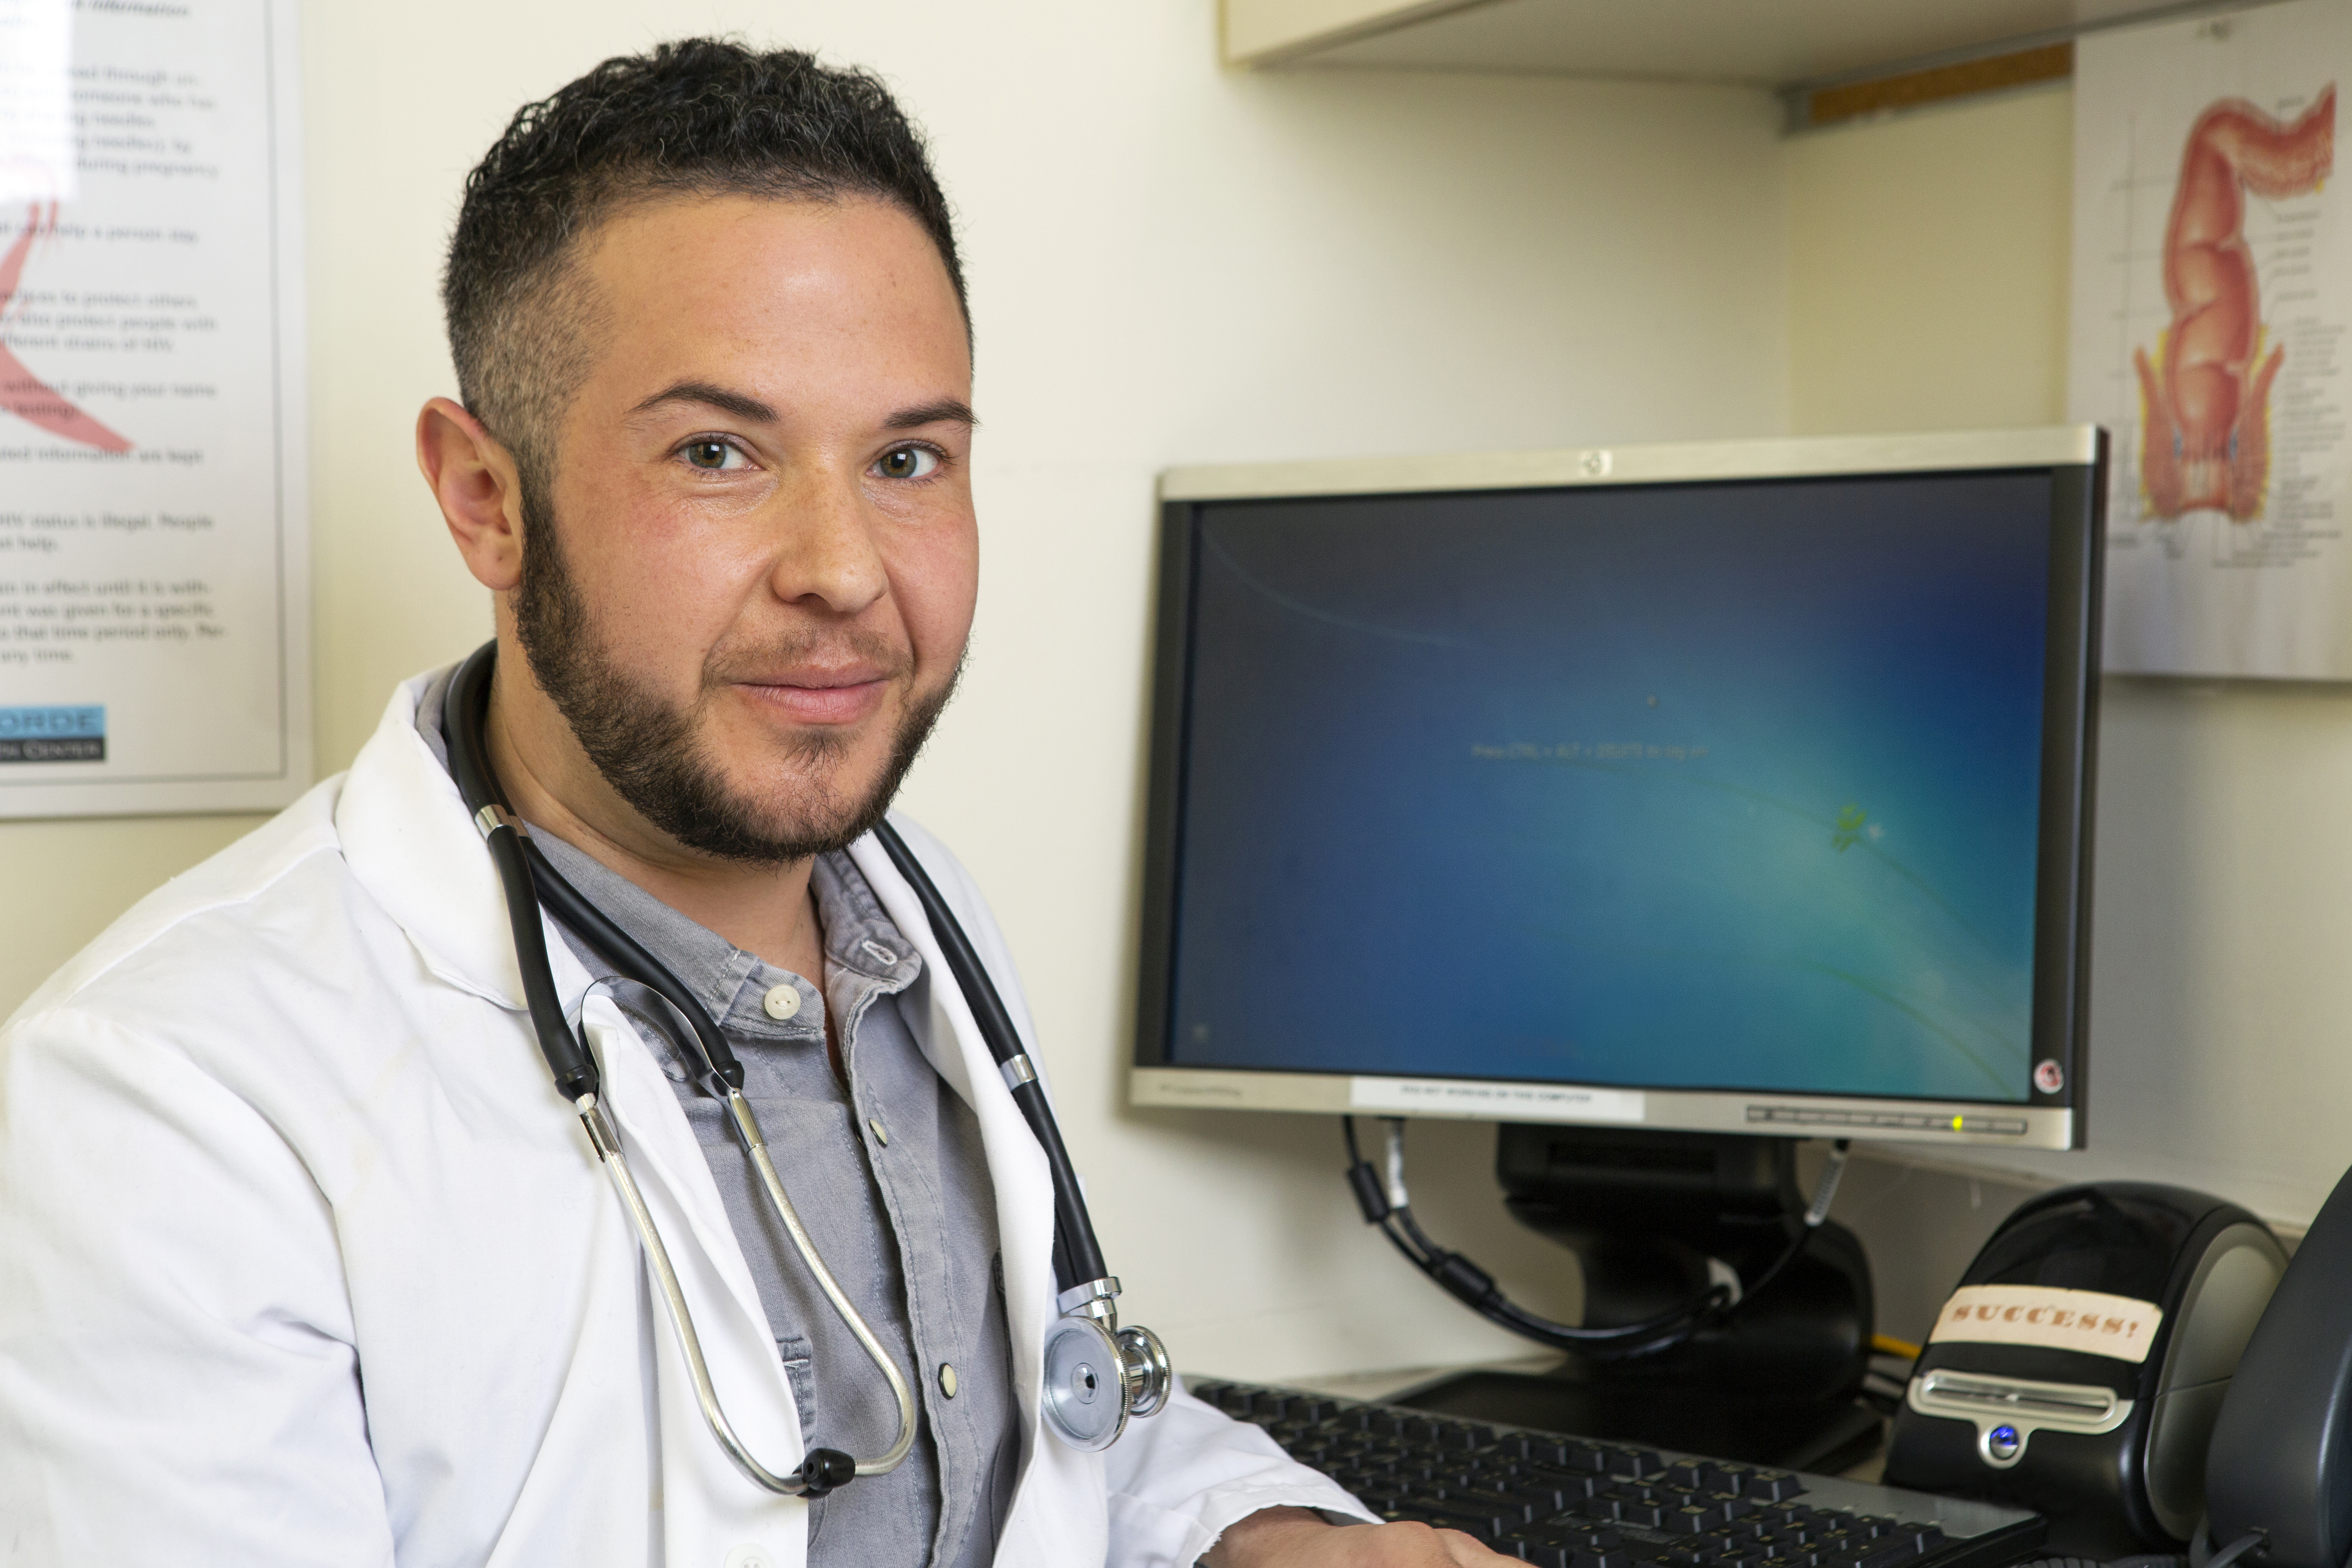 A transmasculine doctor with his computer.